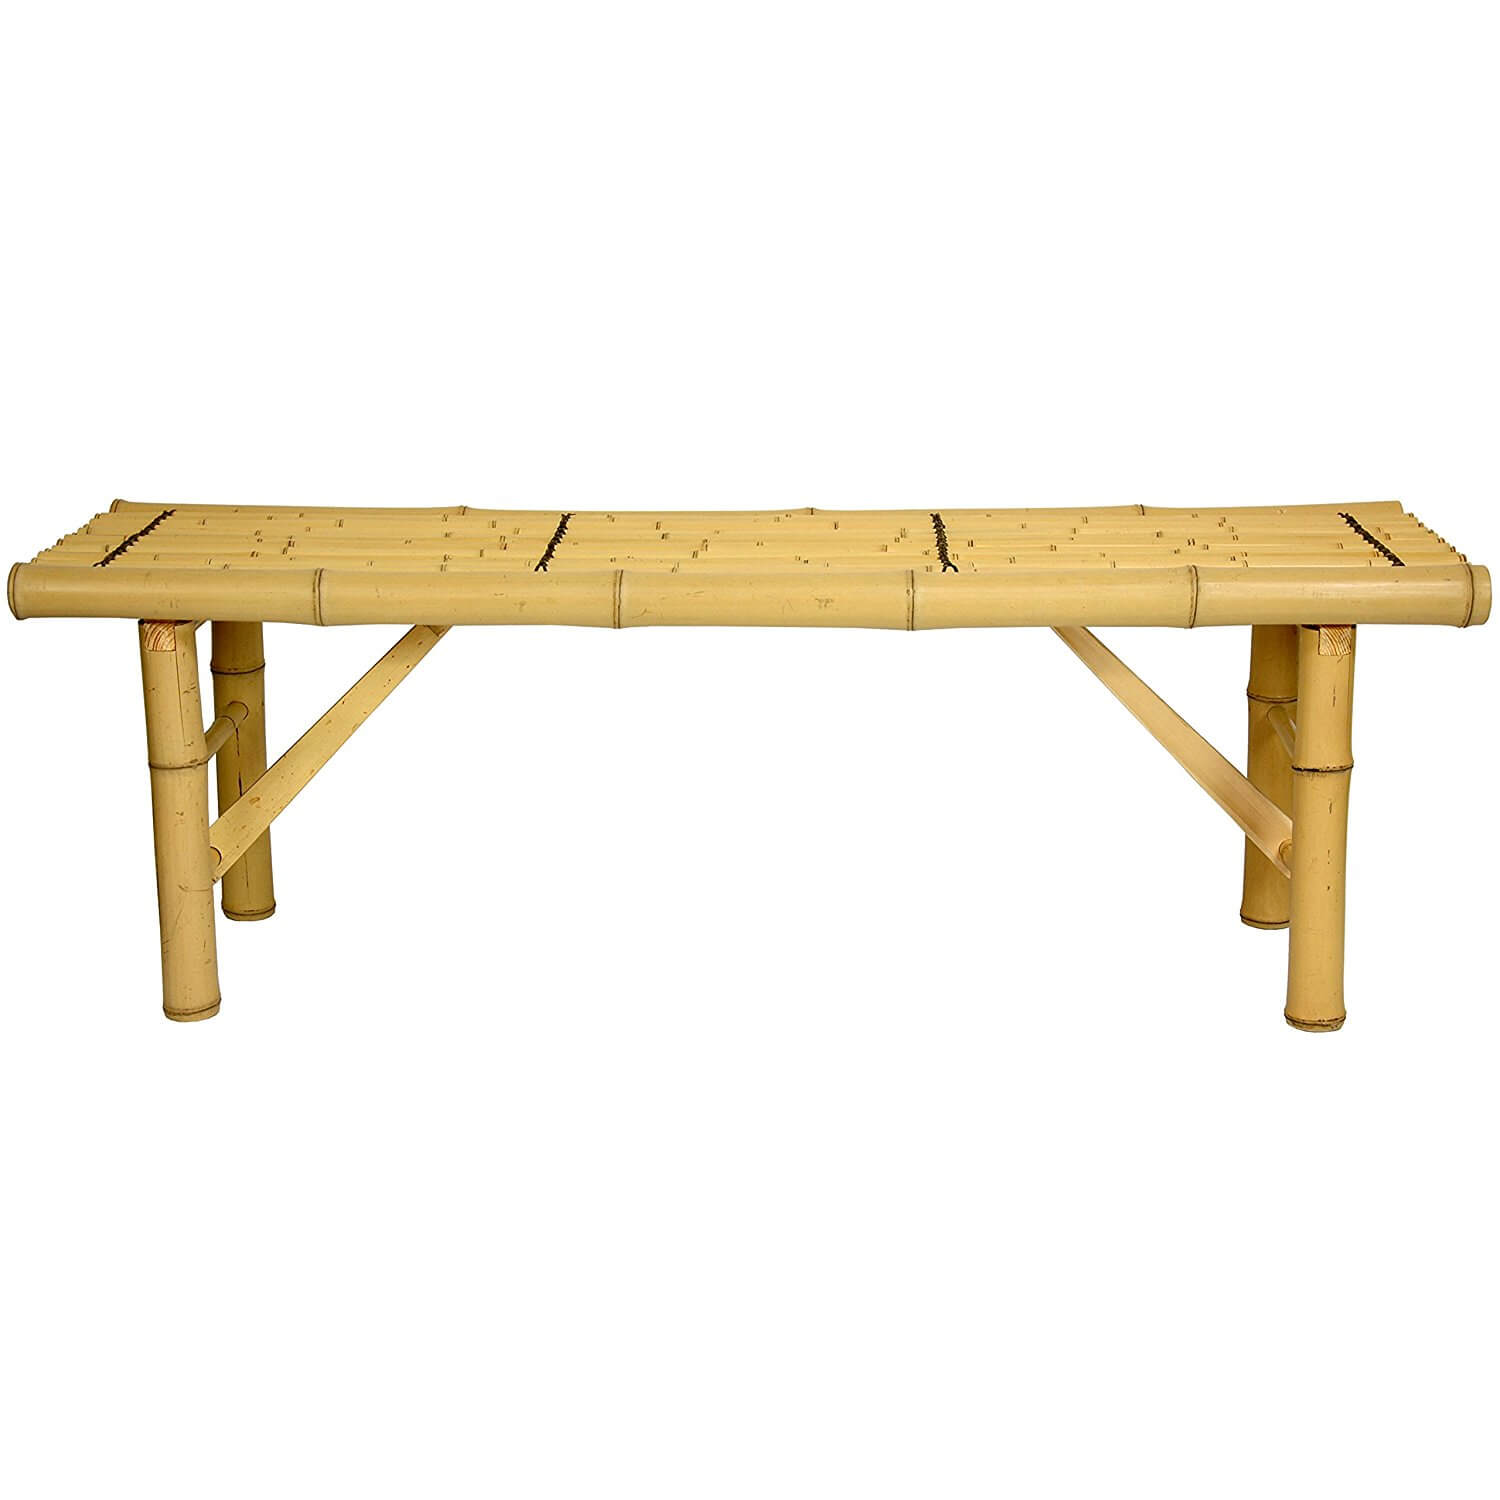 Foldable Pole Bamboo Table-Bench